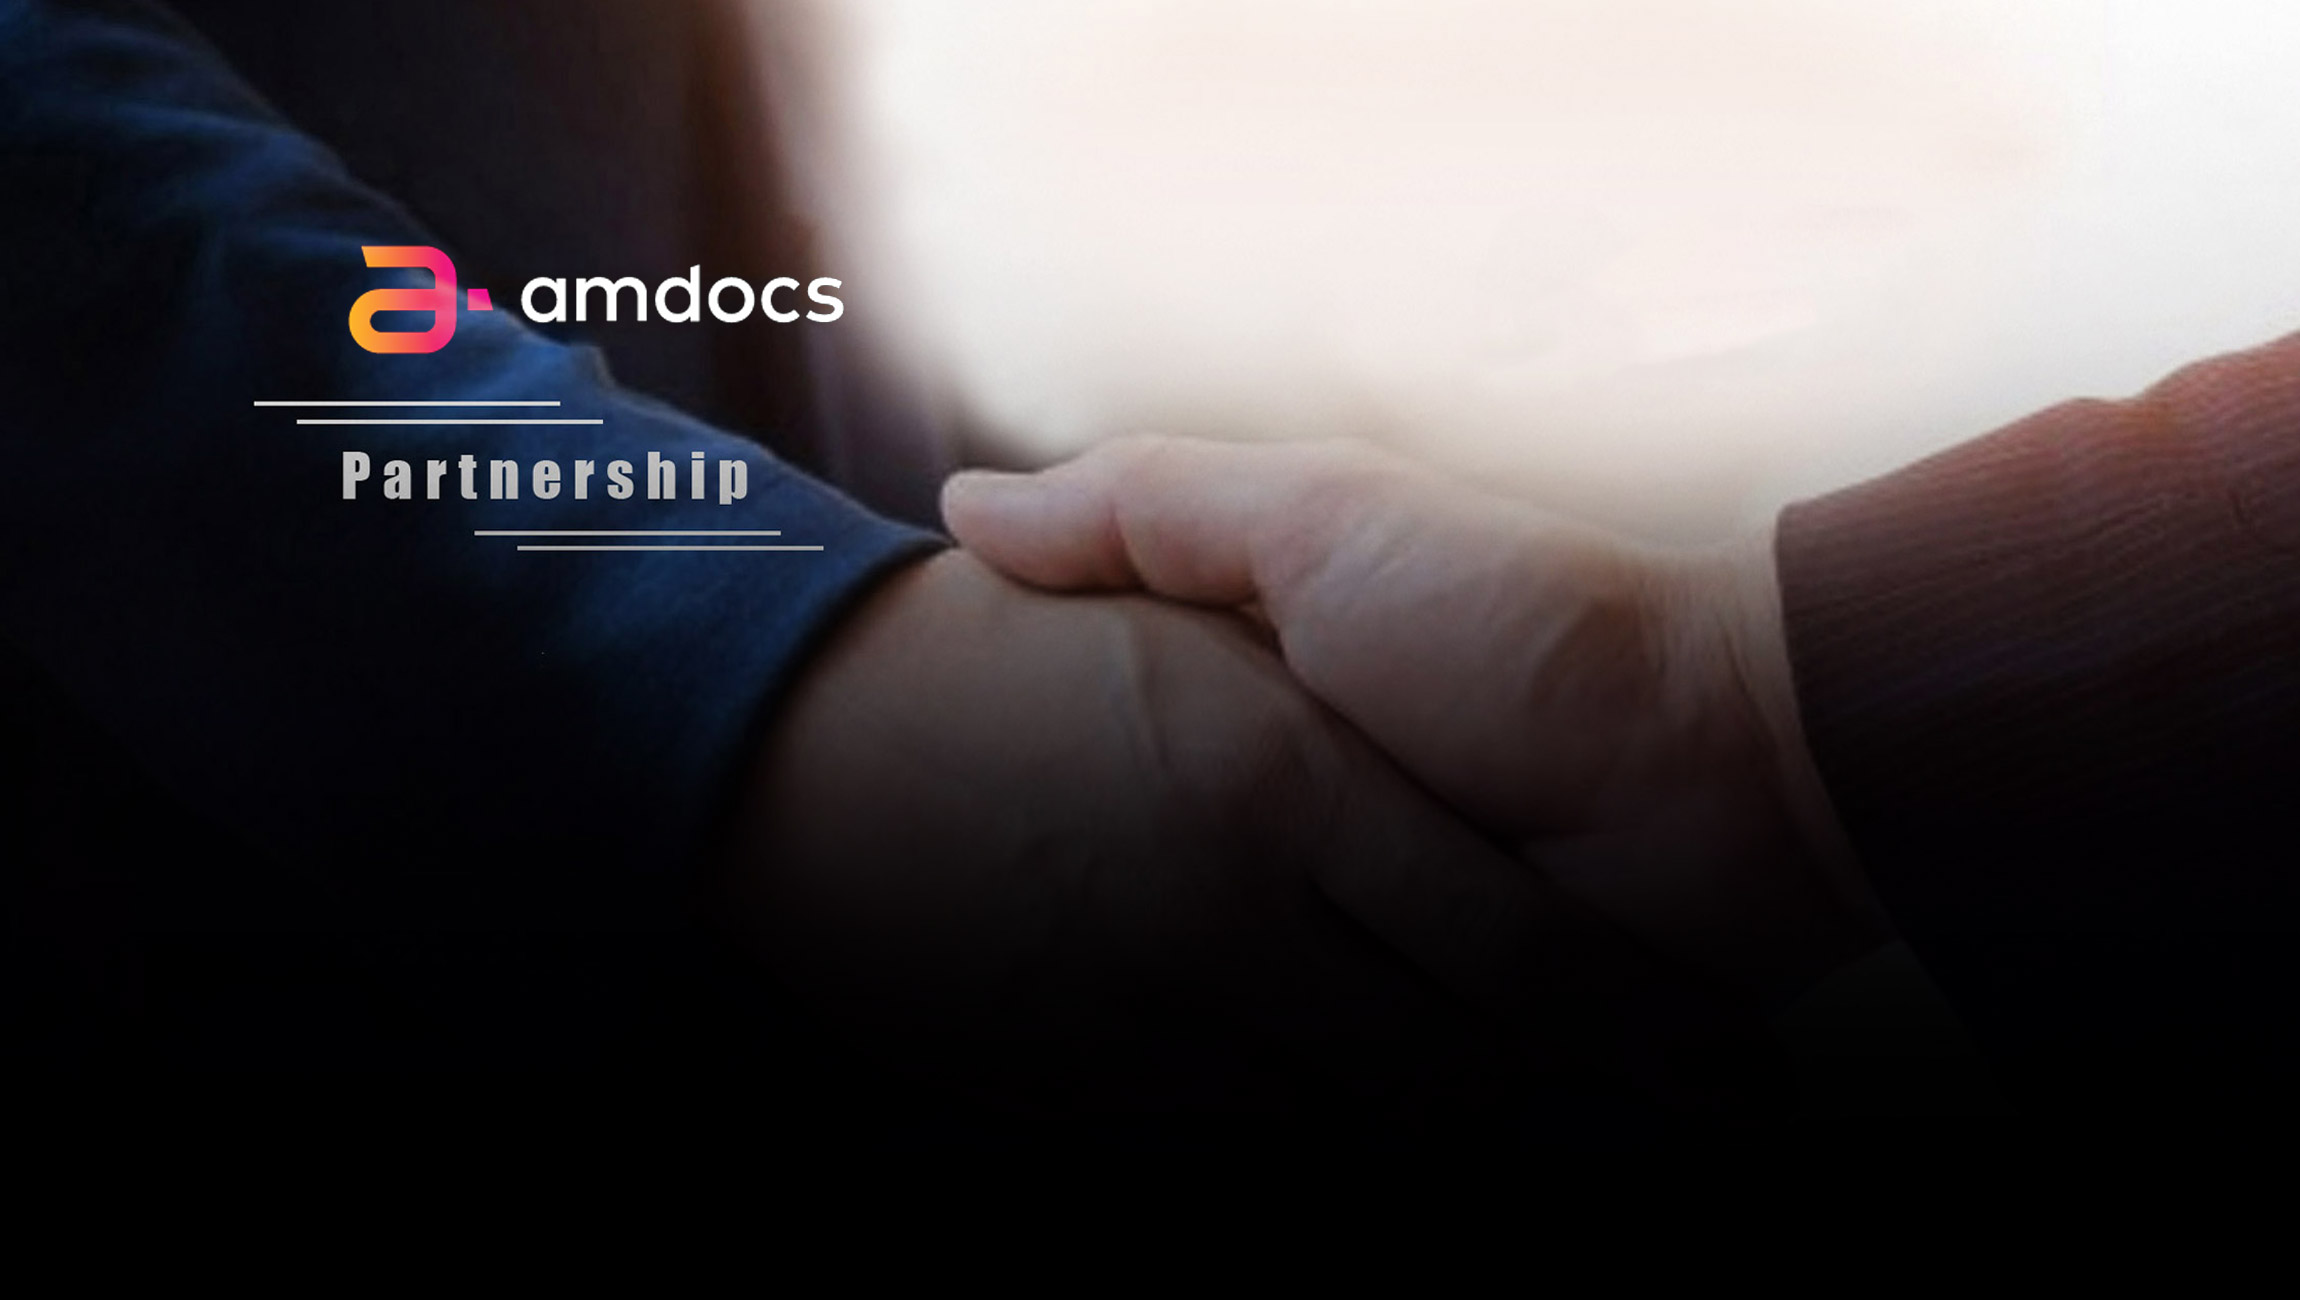 Globe Expands its Partnership with Amdocs to Revolutionize the Online Retail Experience for its Customers in a Pioneering Pilot